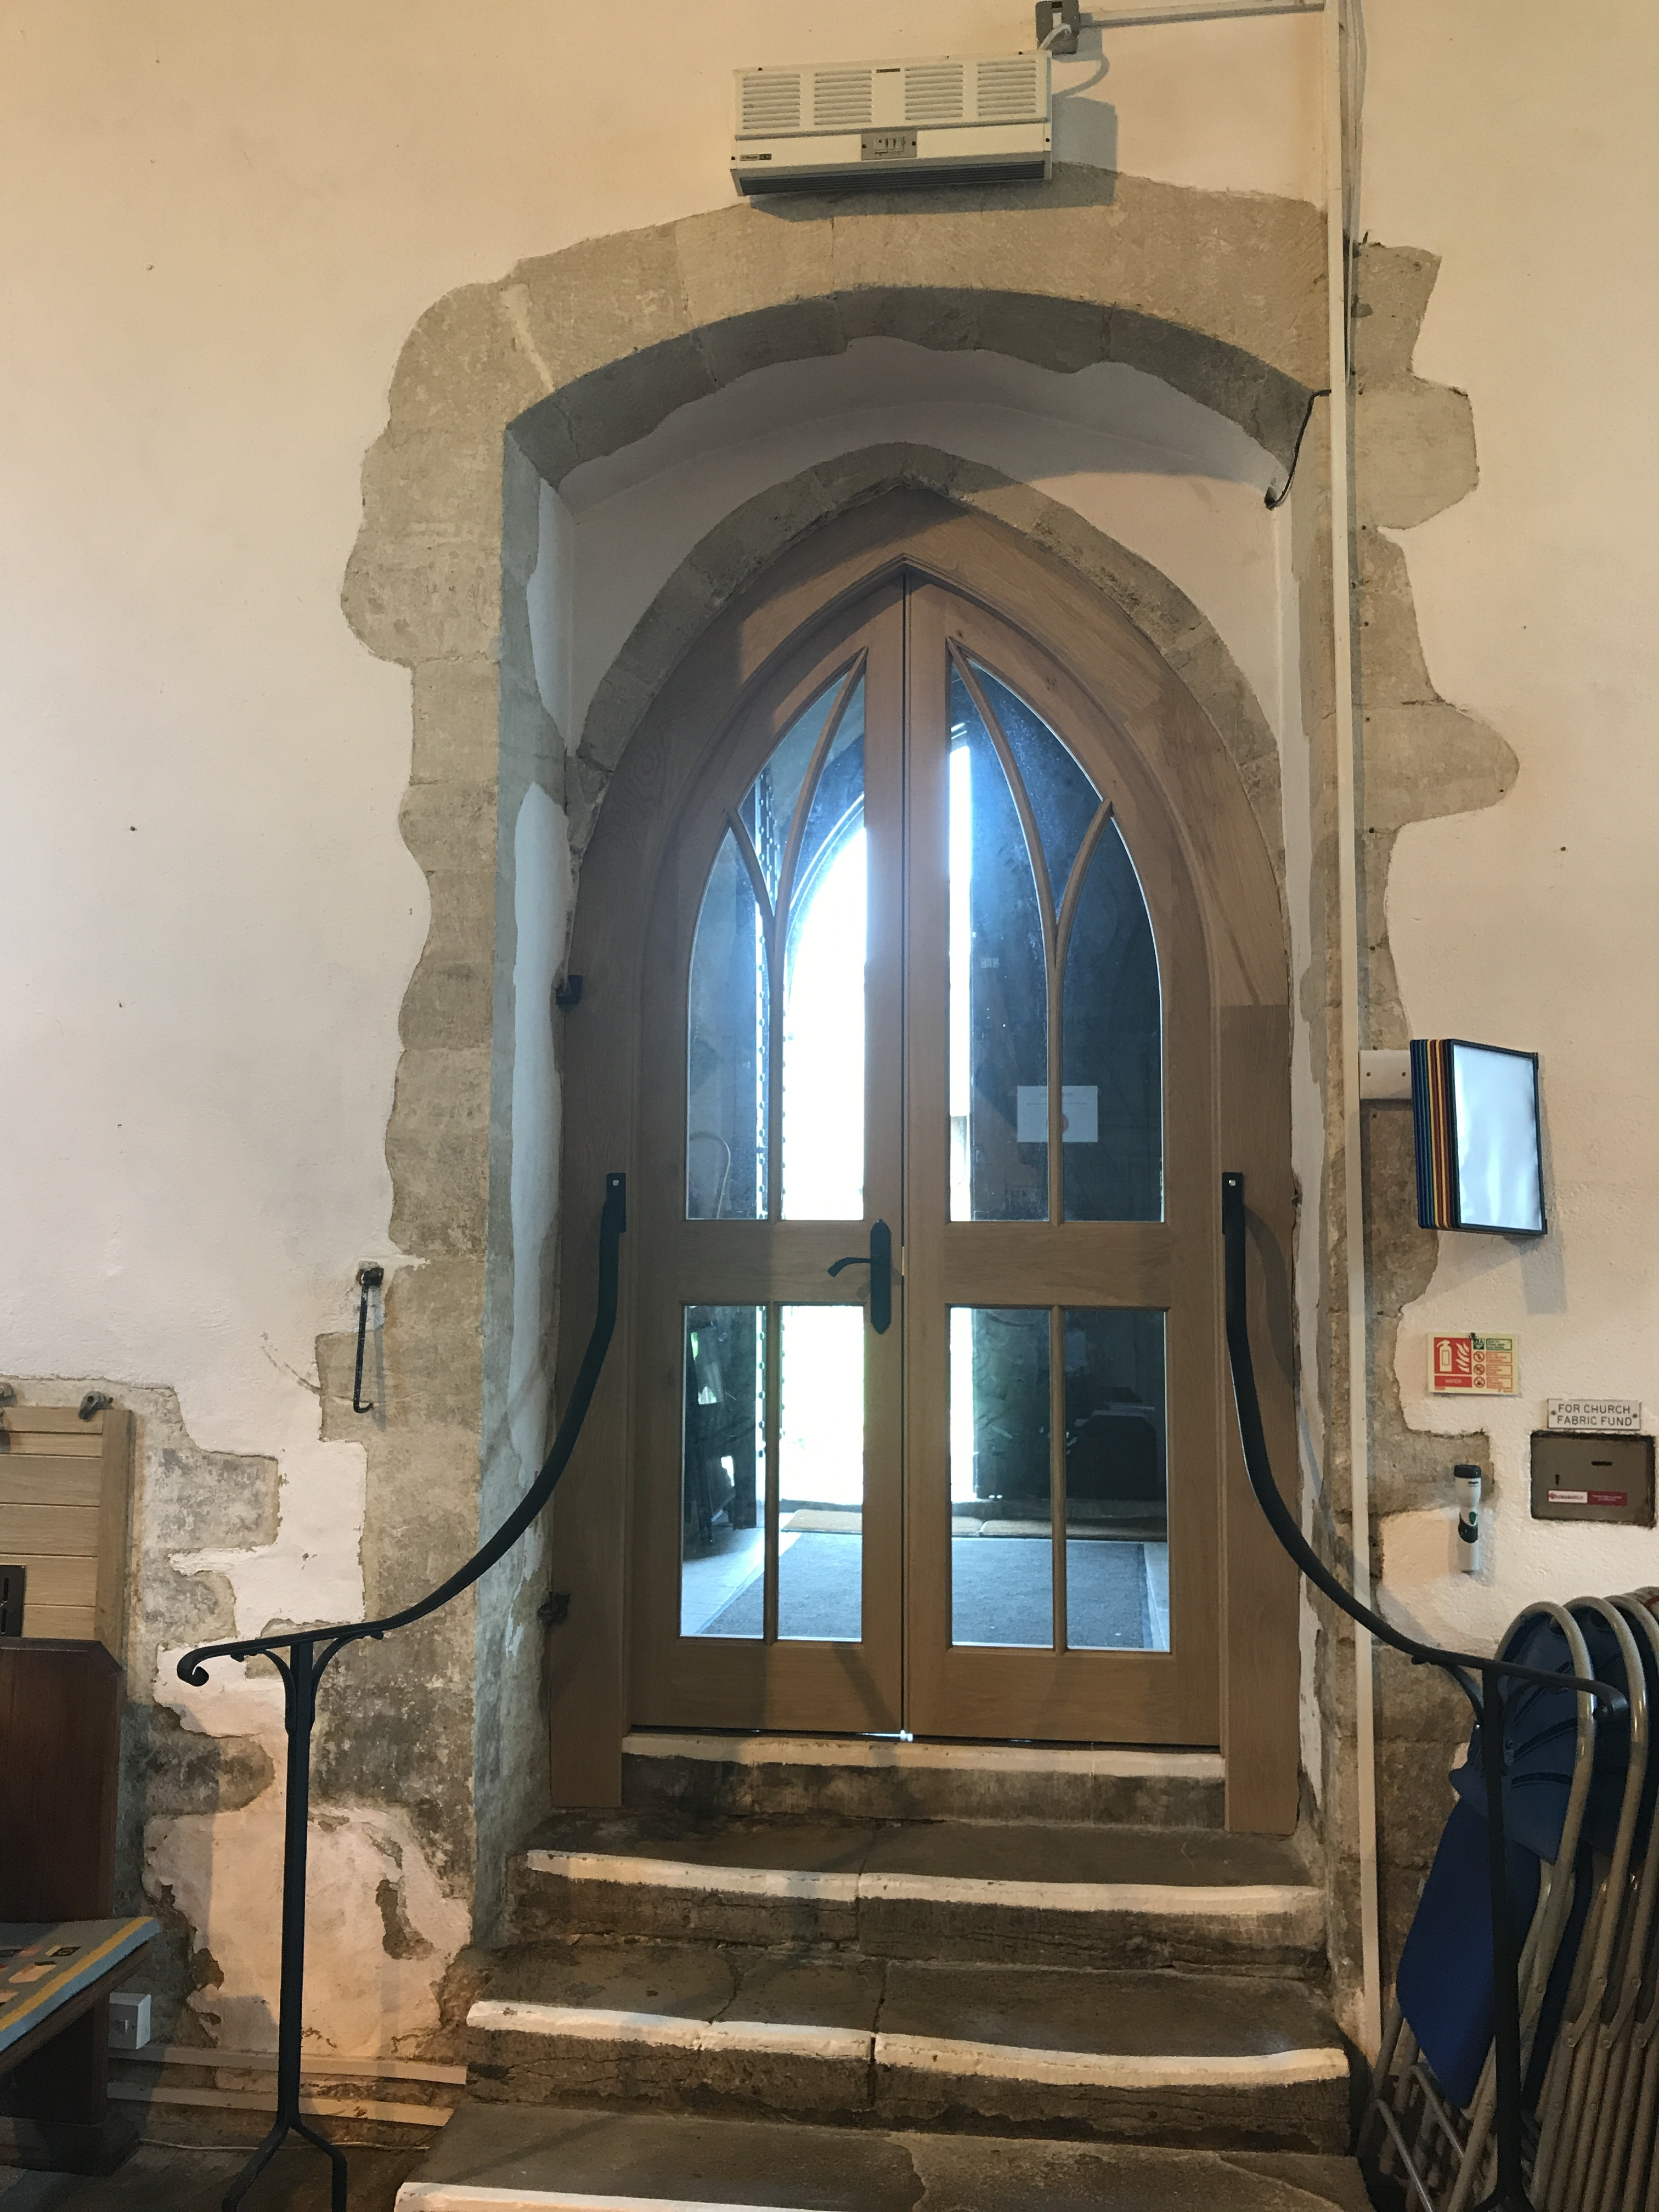 From inside with the new railings in place